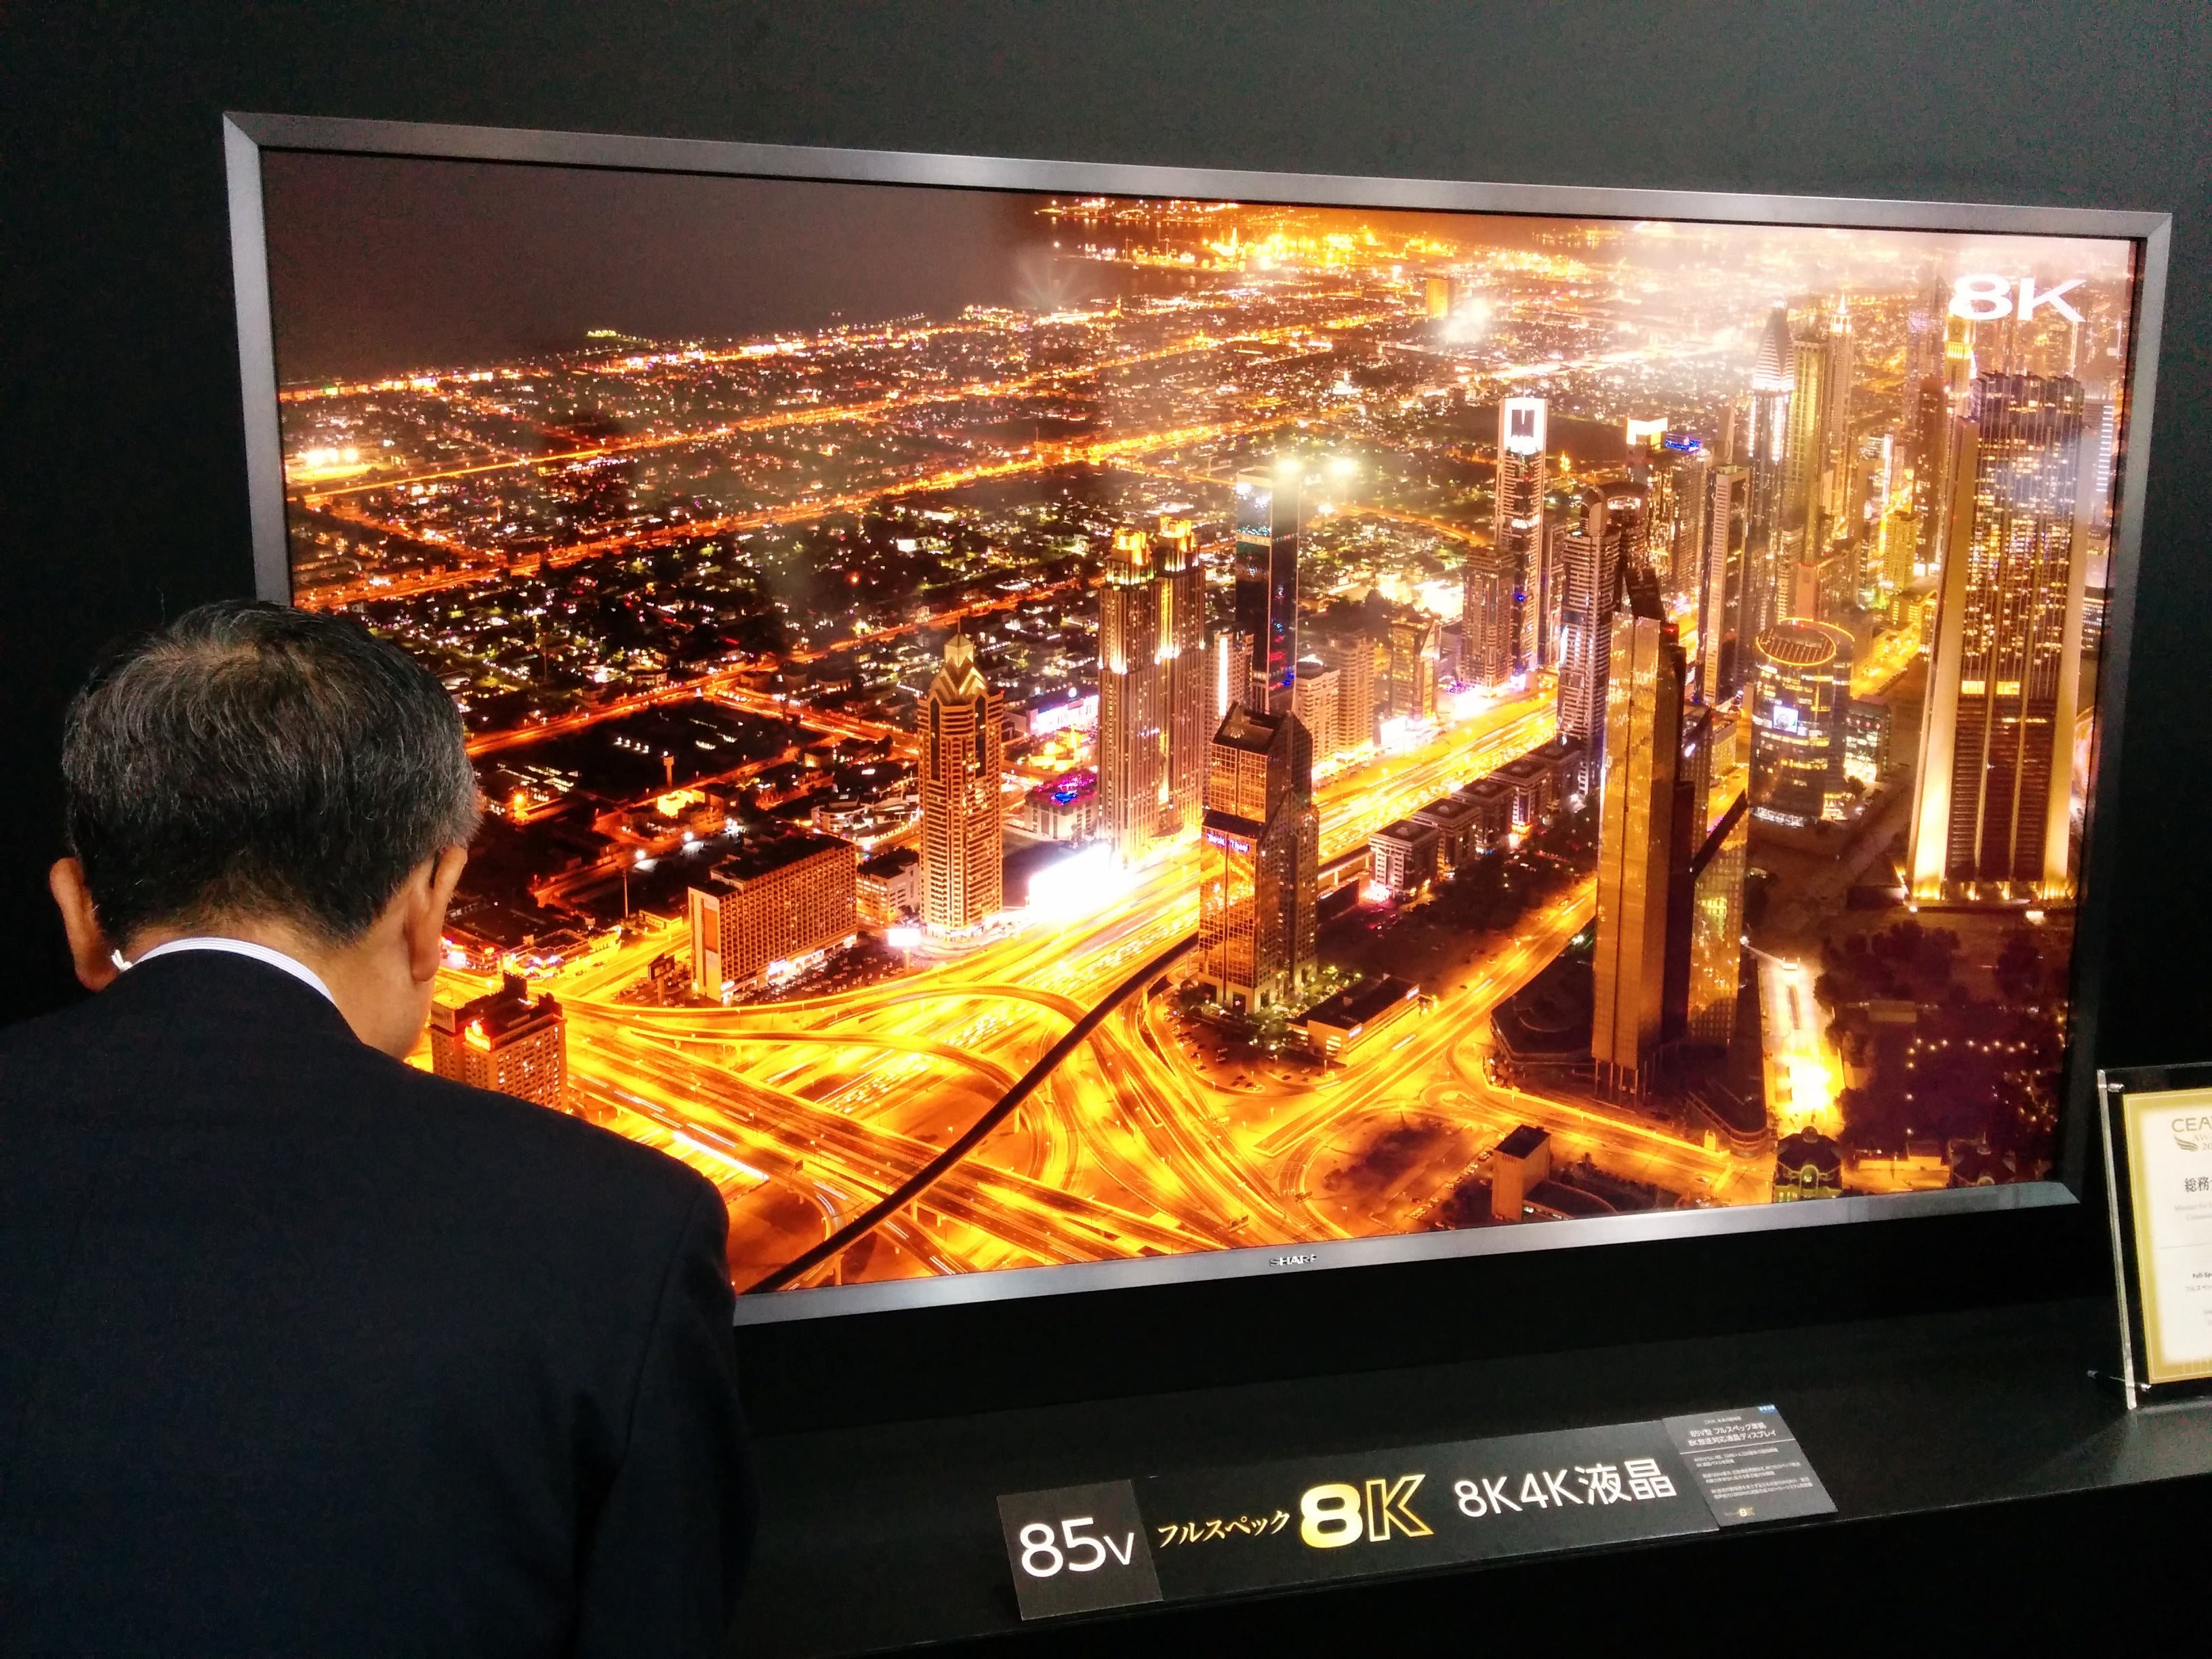 forget 4k, sharp's already pushing tvs with 8k resolution | pcworld